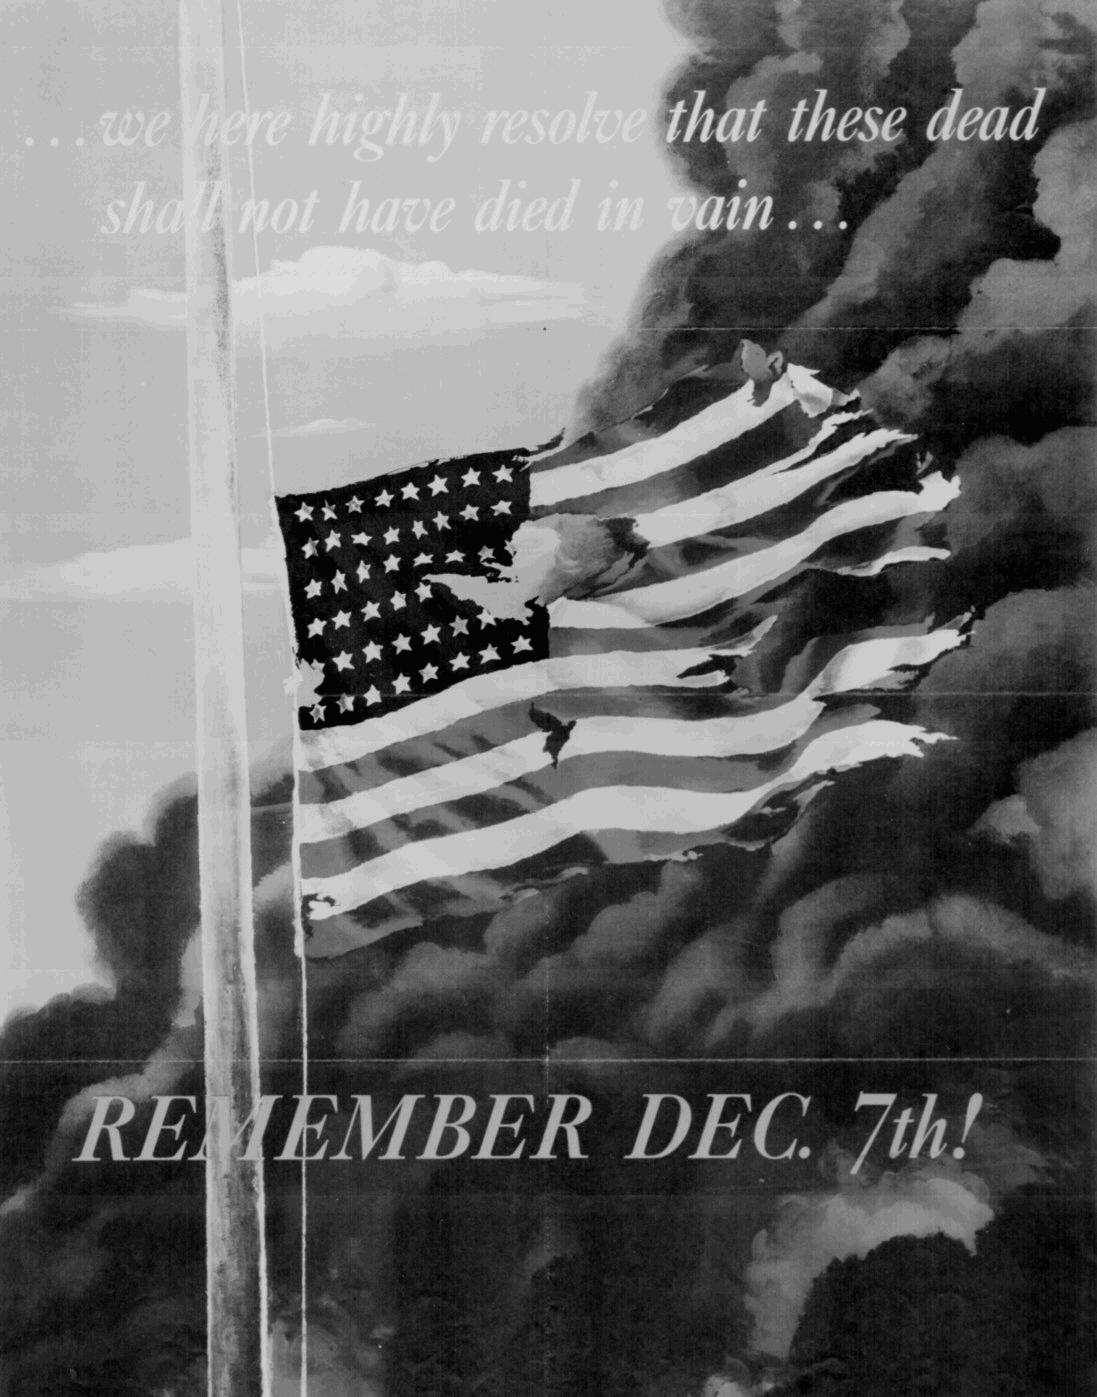 ... that these dead shall not have died in vain...REMEMBER DEC. 7th